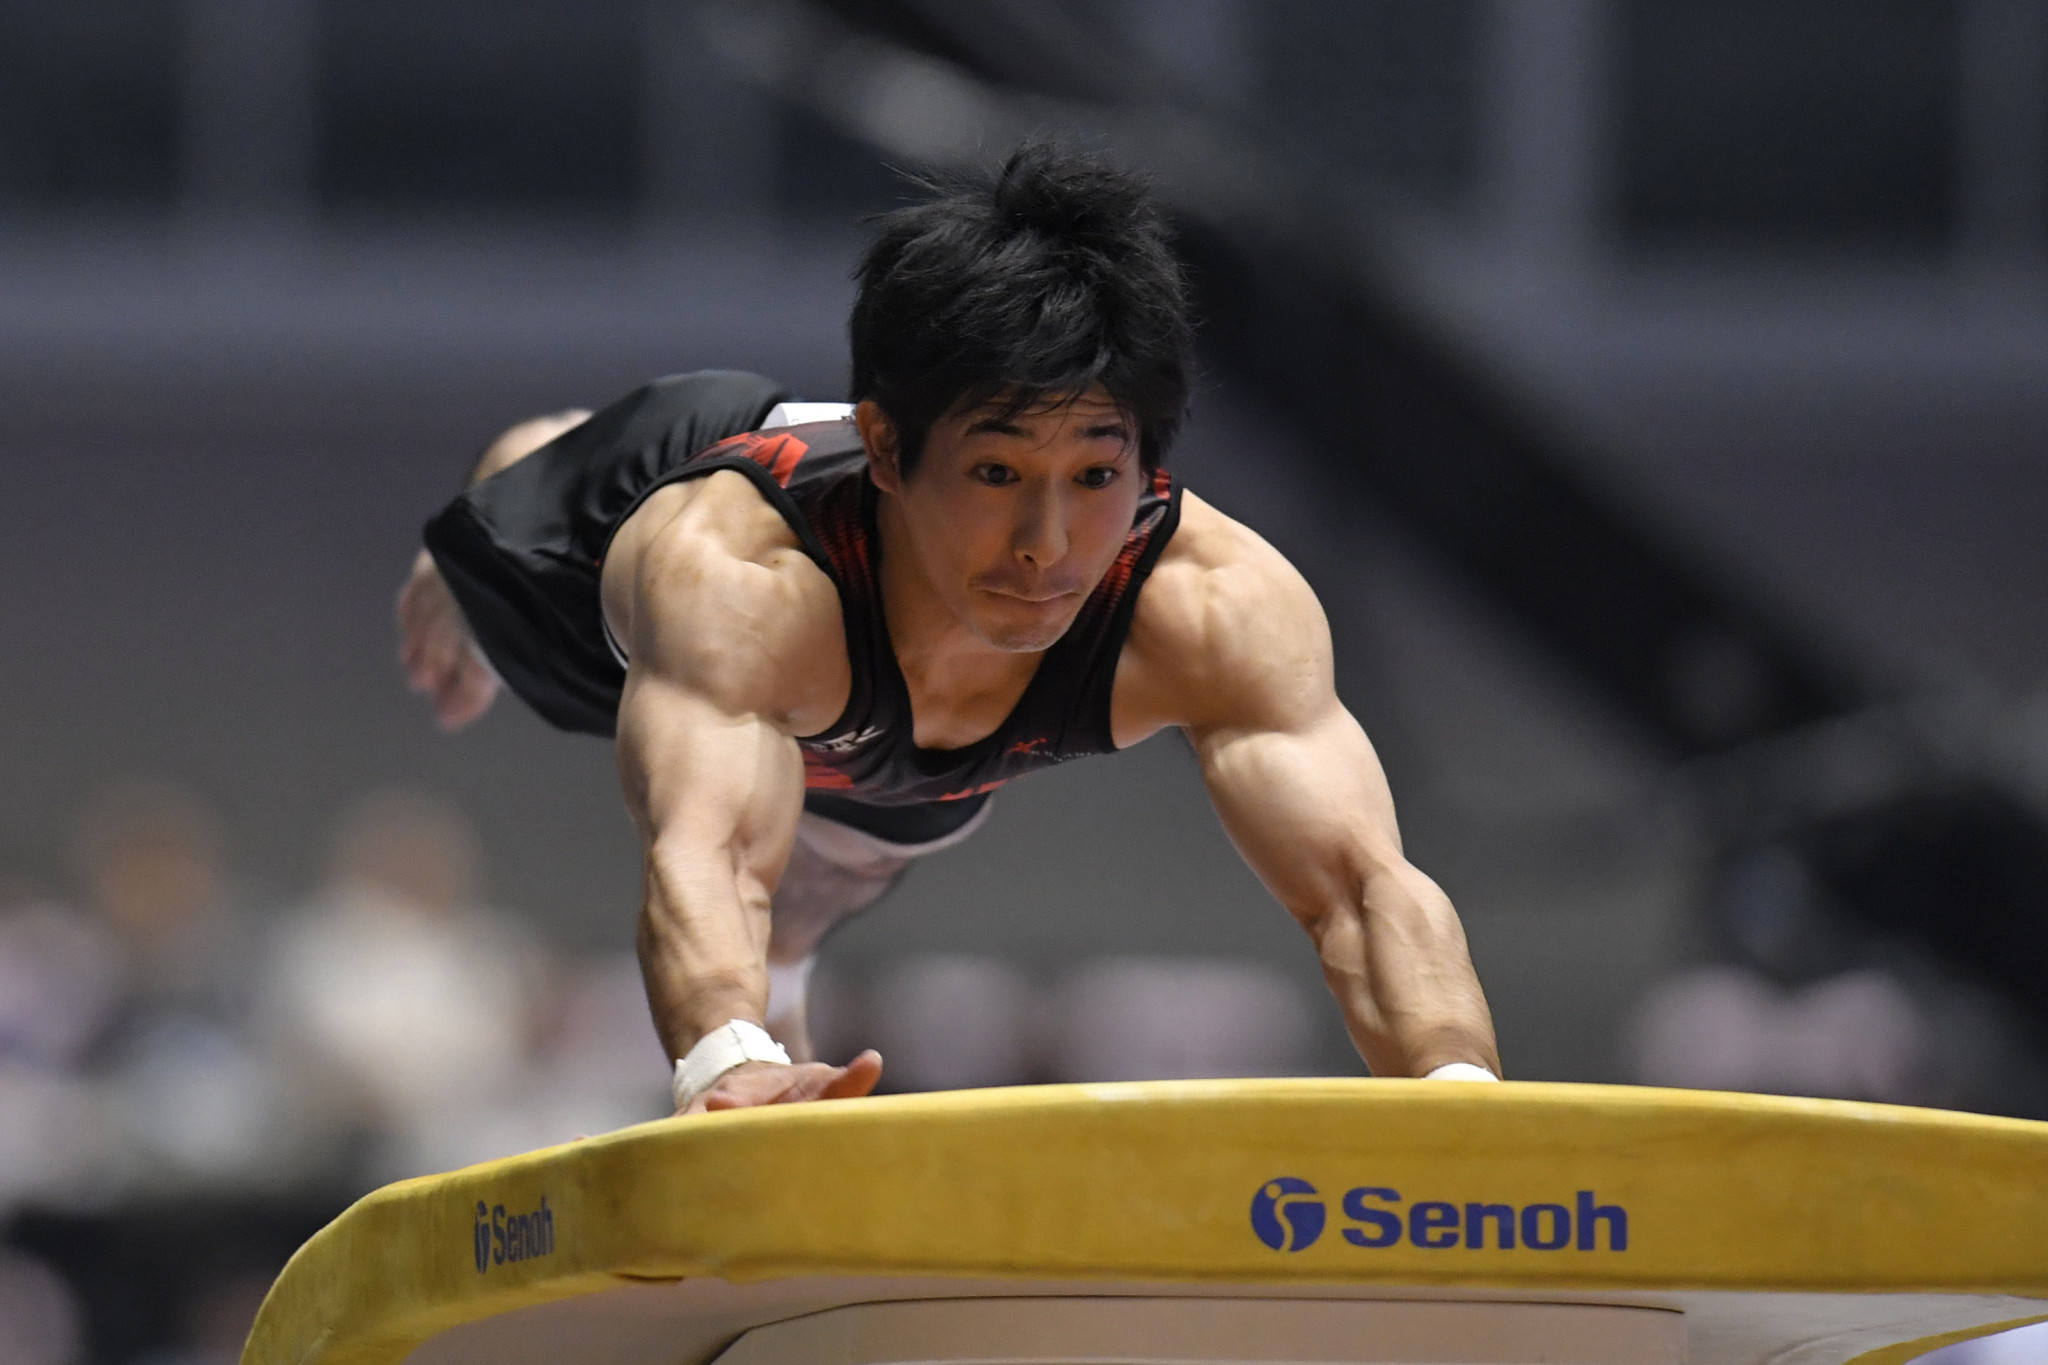 Japan's Keisuke Asato won the men's vault event at the opening FIG Individual Apparatus World Cup in Cottbus ©Getty Images